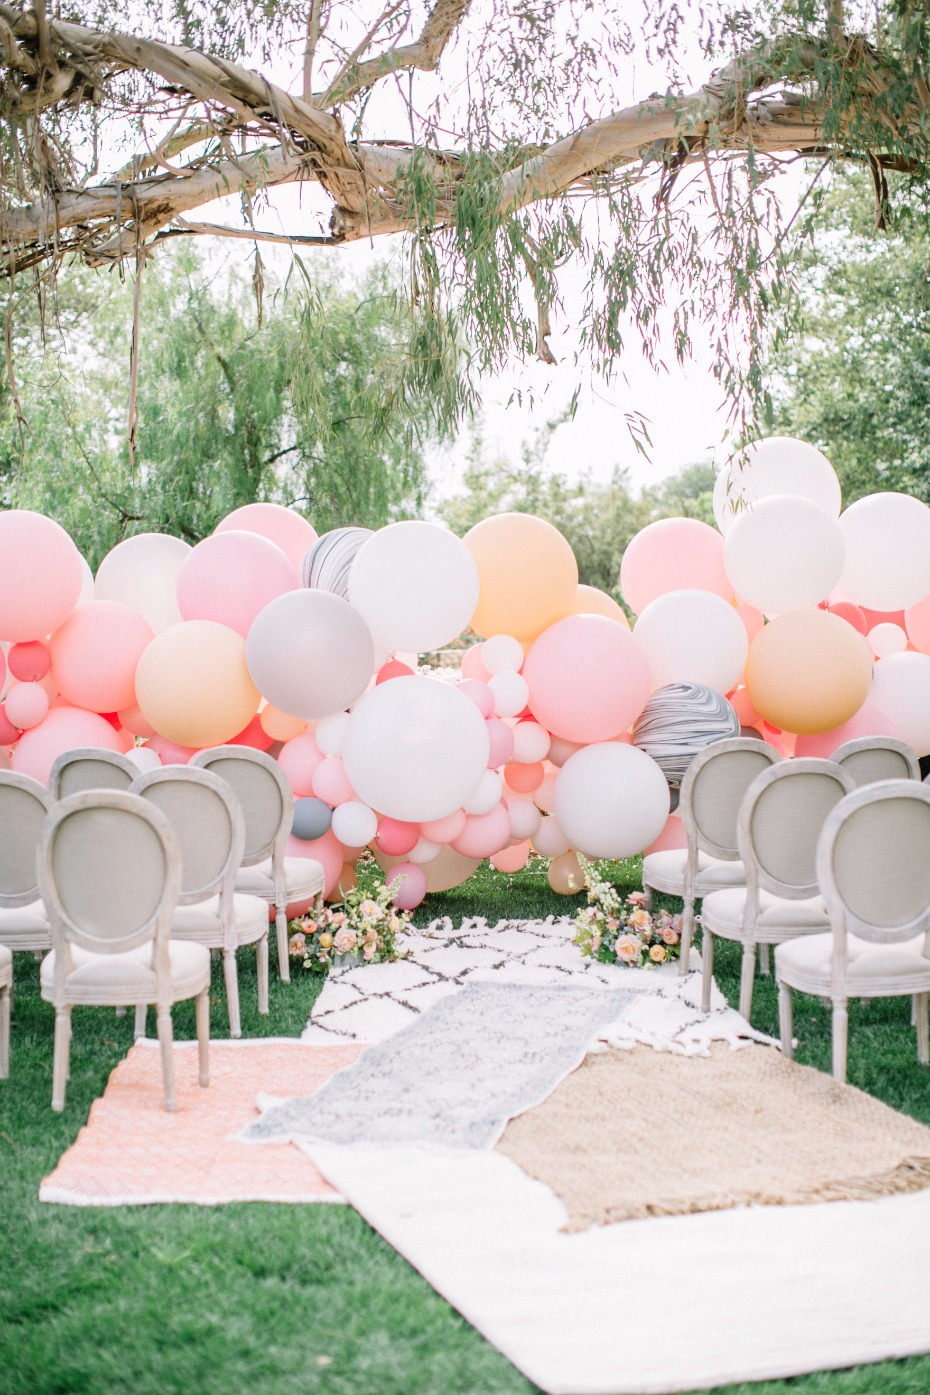 Balloon backdrop idea